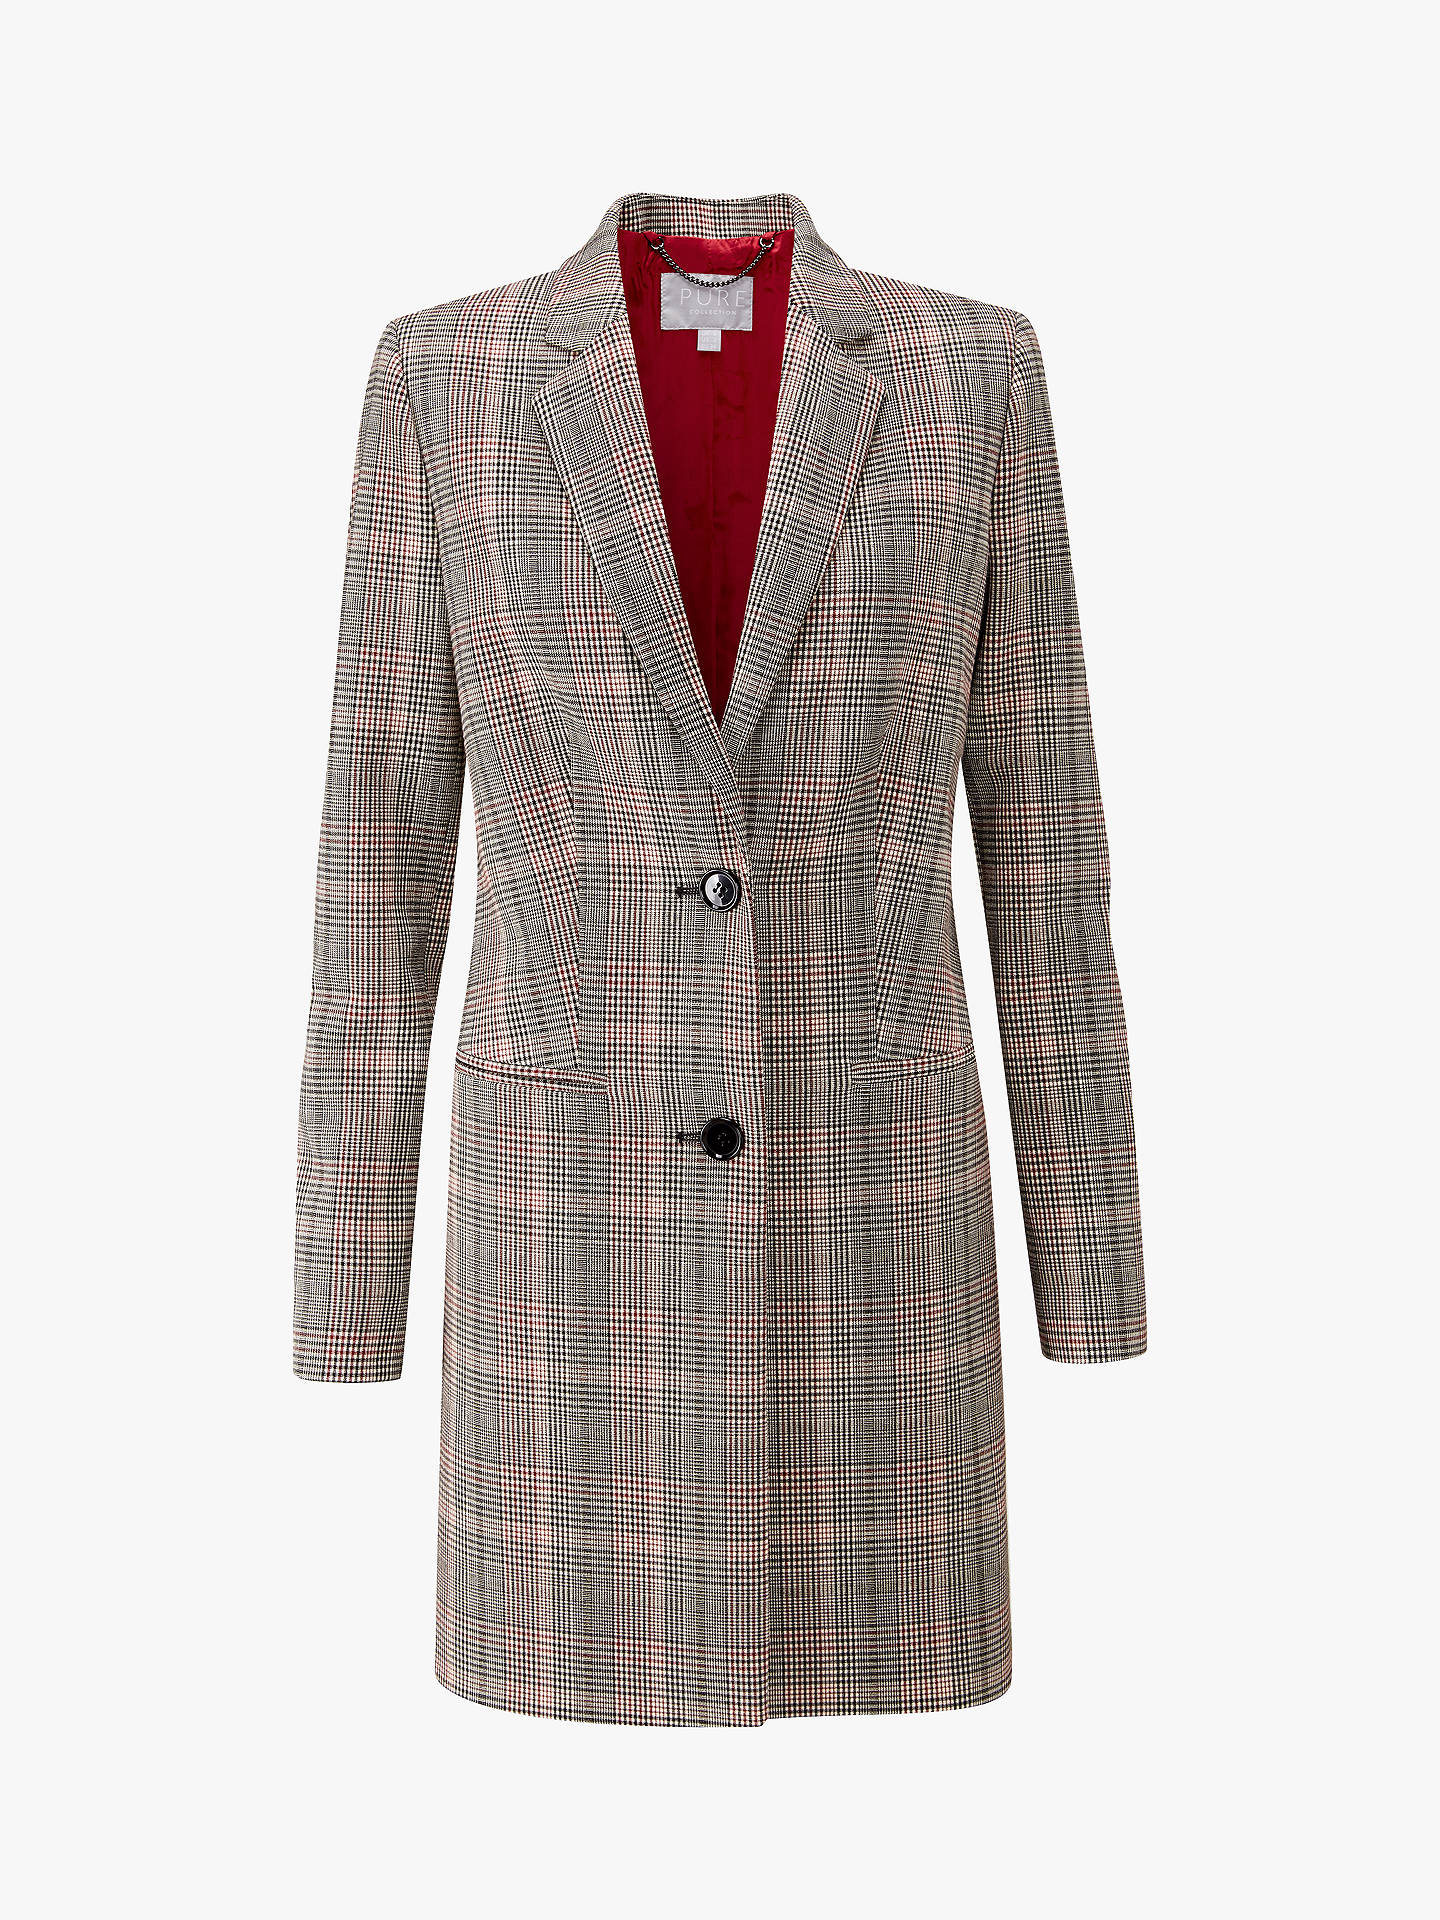 BuyPure Collection Single Breasted Check Coat, Multi, 8 Online at johnlewis.com